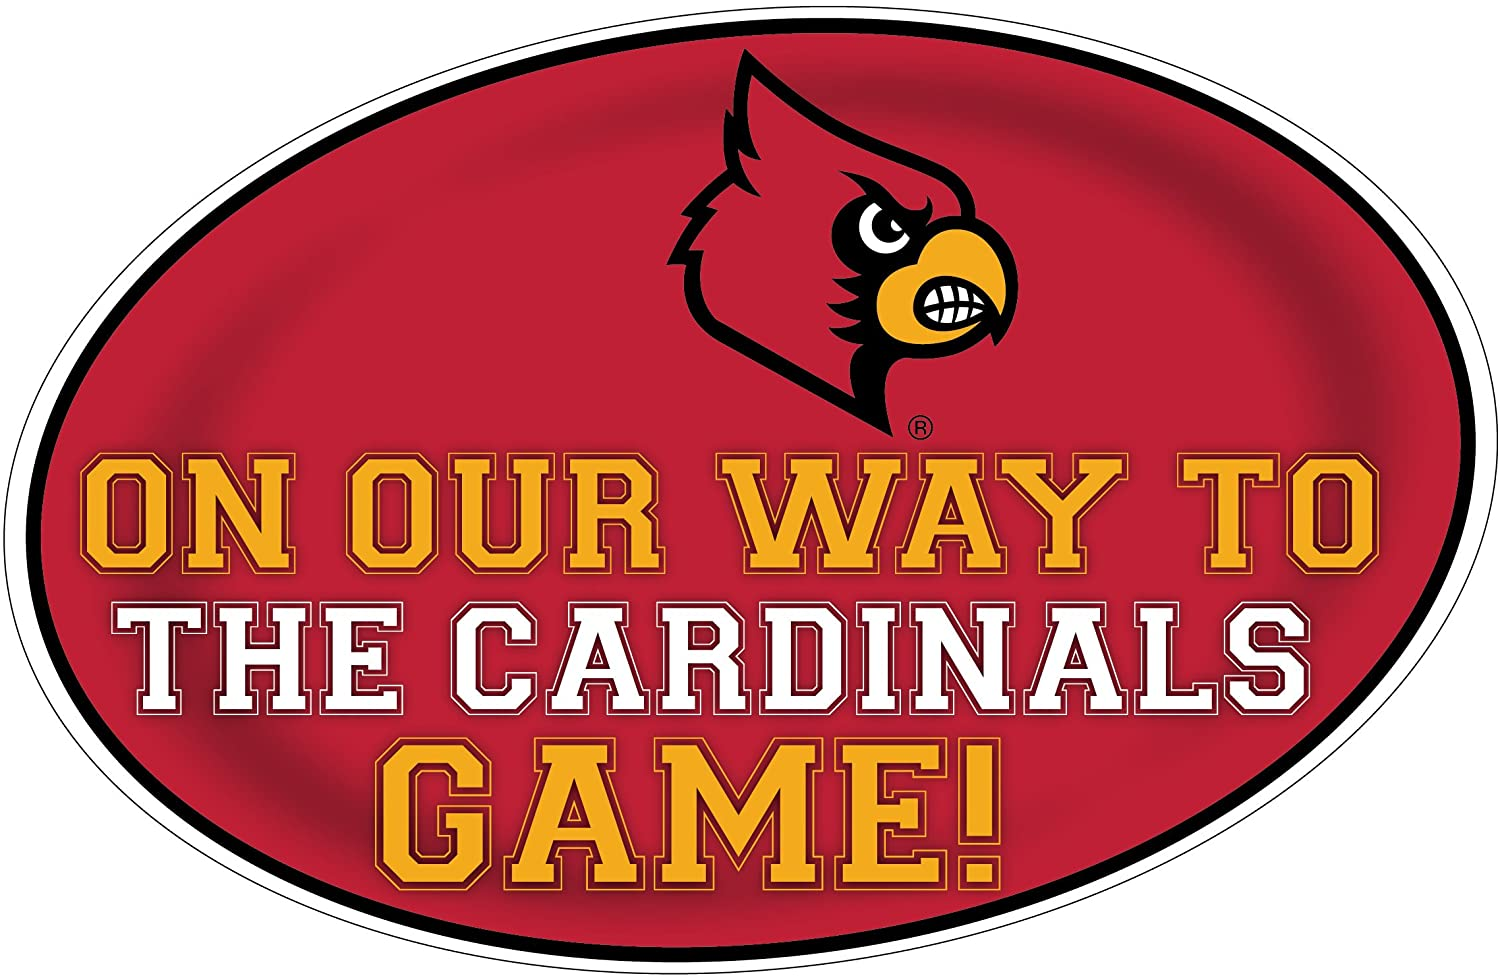 LOUISVILLE CARDINALS HEADING TO THE GAME-UNIVERSITY OF LOUISVILLE 11X17 INCH JUMBO CAR MAGNET